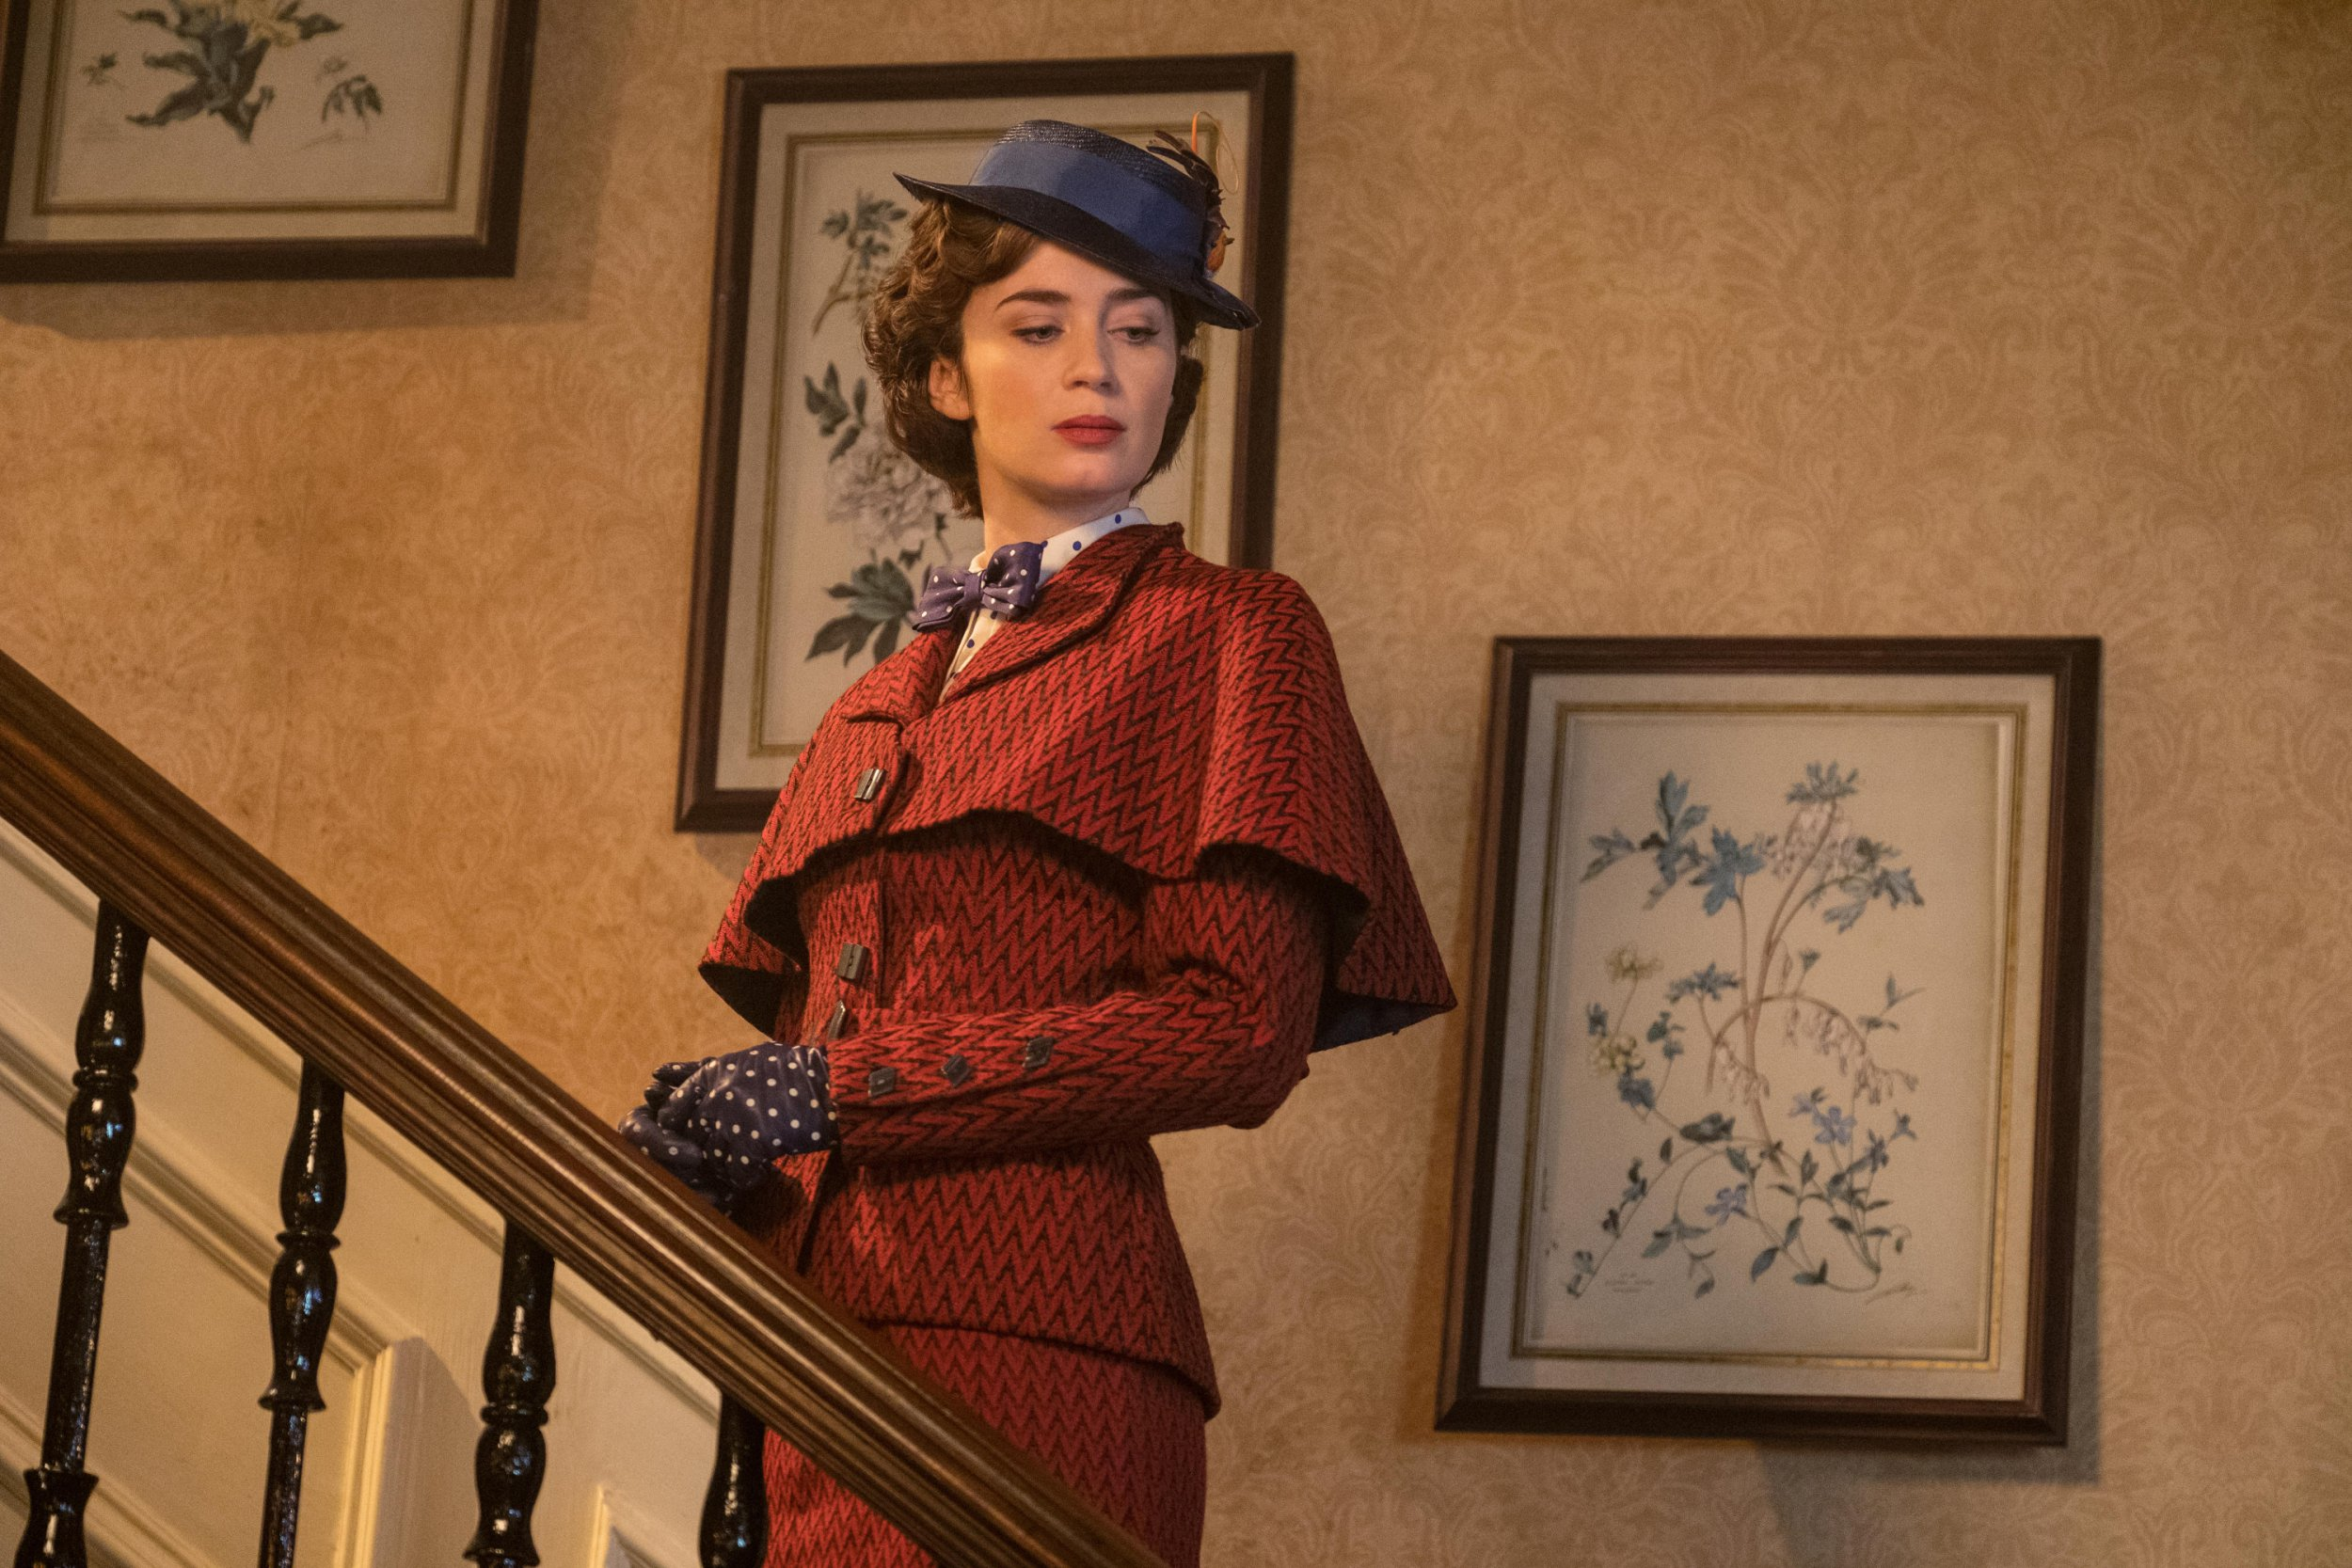 Emily Blunt is Mary Poppins in Disney???s MARY POPPINS RETURNS, a sequel to the 1964 film MARY POPPINS, which takes audiences on an all-new adventure with the practically perfect nanny and the Banks family.